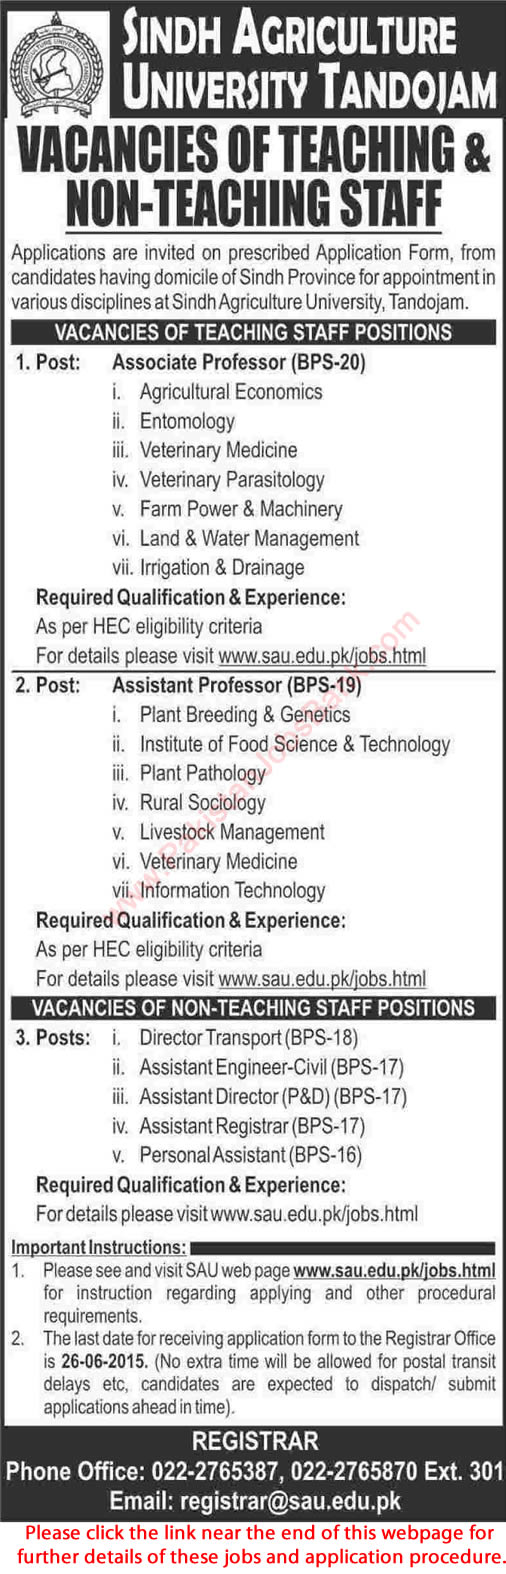 Sindh Agriculture University Tandojam Jobs 2015 June Teaching Faculty & Admin Staff